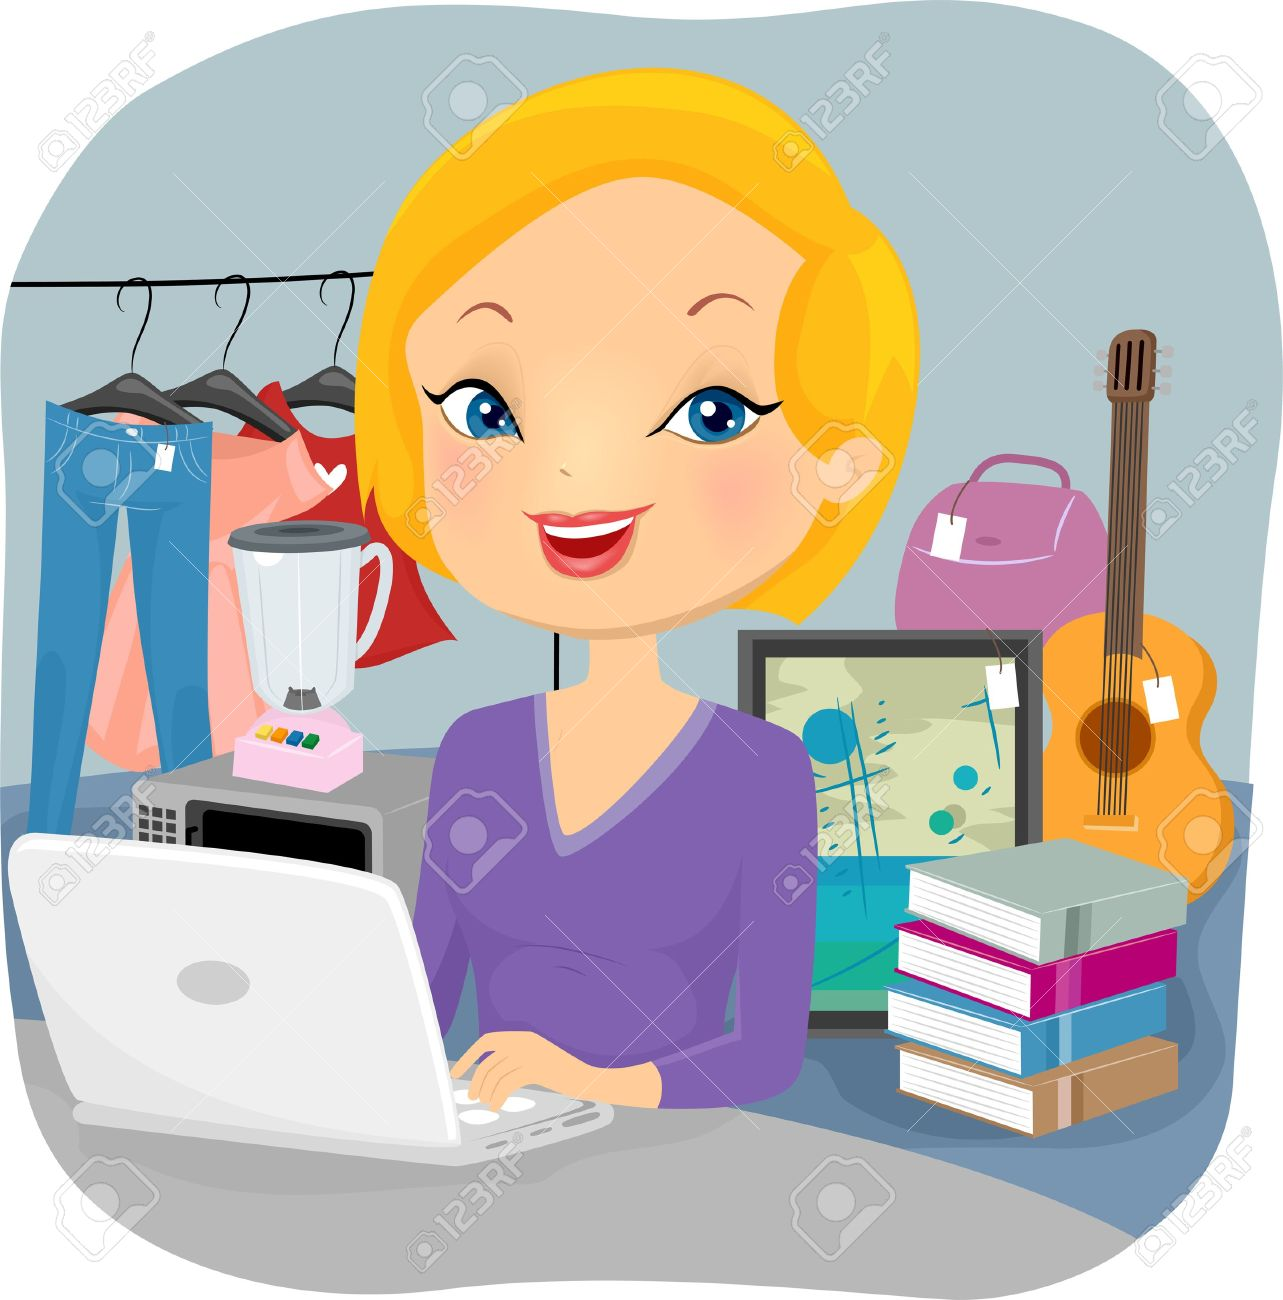 Illustration Of A Female Online Seller Conducting Business From.